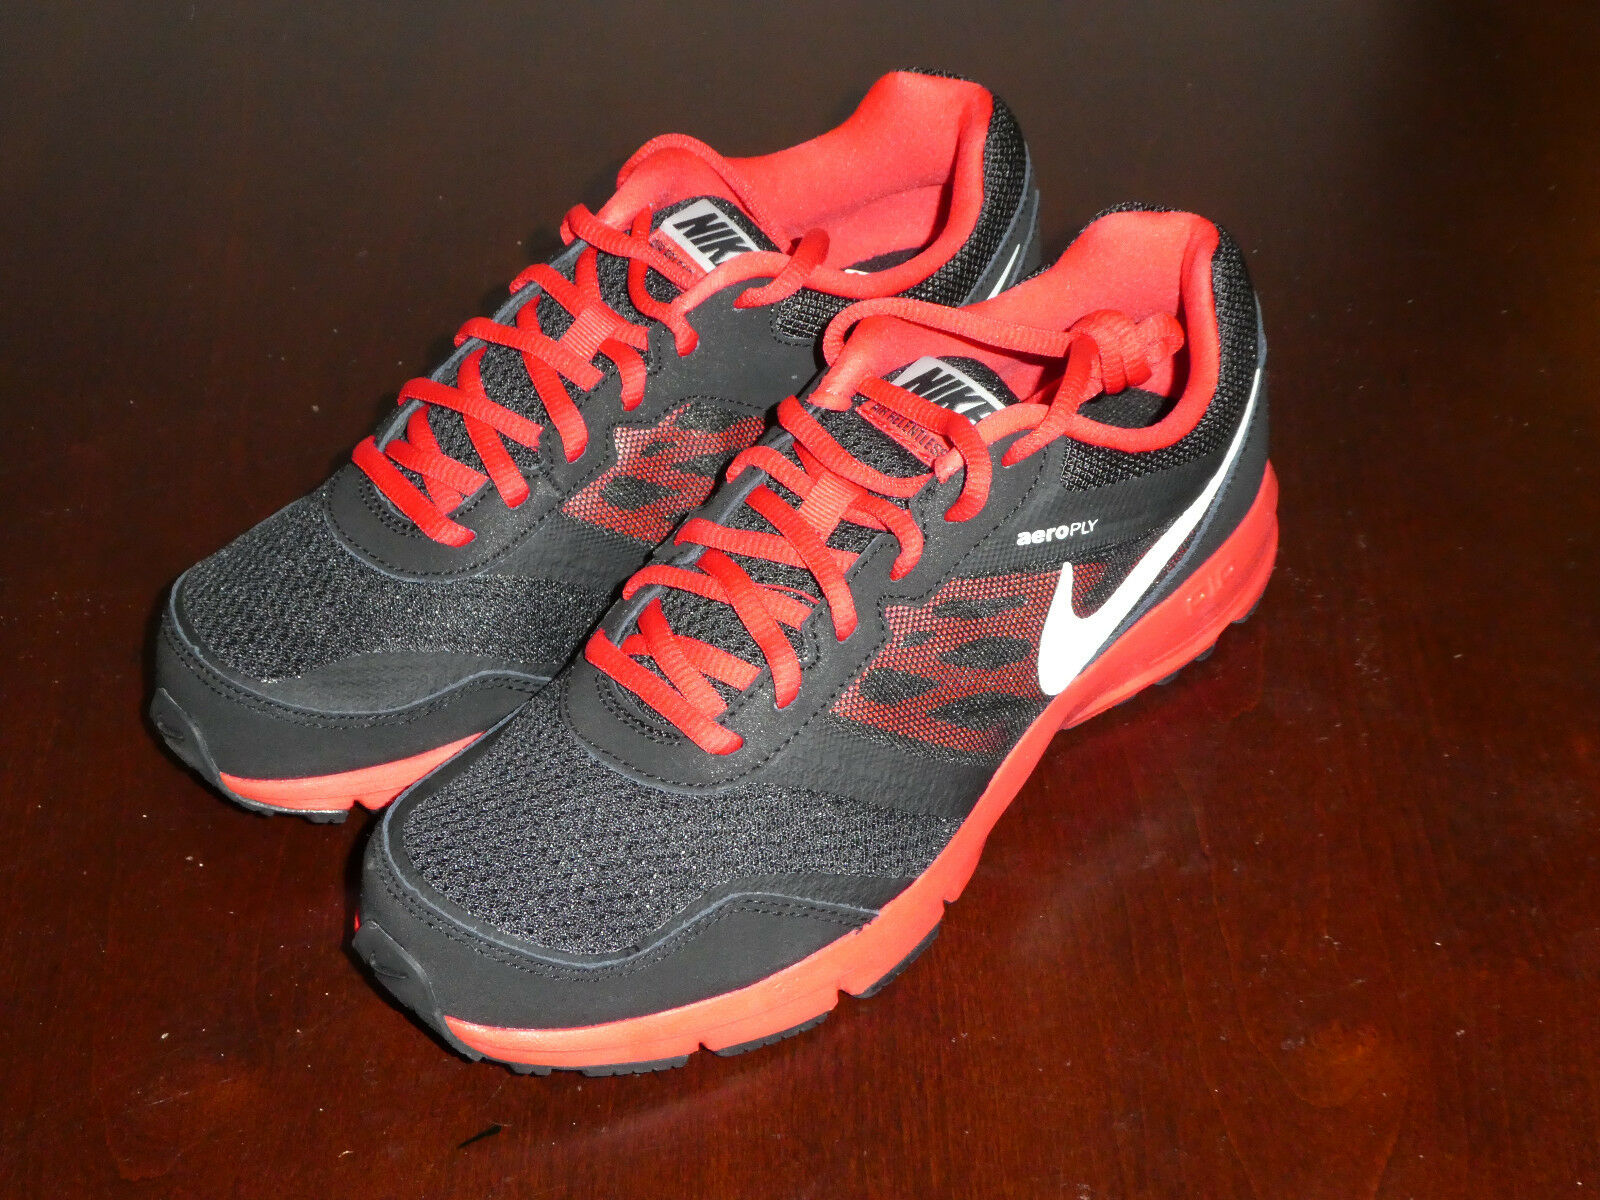 Nike Relentless 4 mens shoes 685138 006 sneakers new